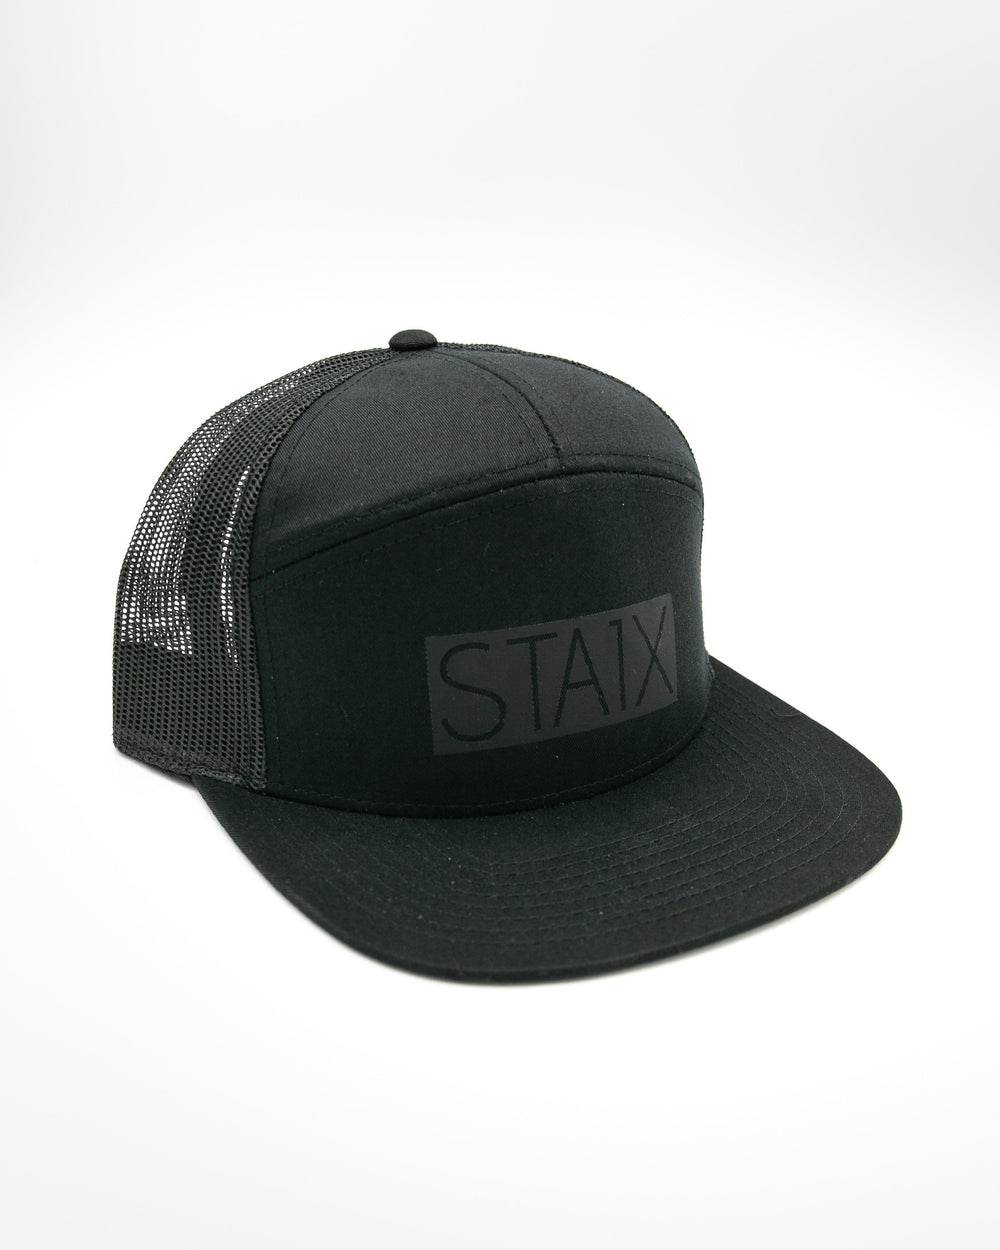 BOXER 7 PANEL - BLACK / BLACK HEADWEAR STAIX